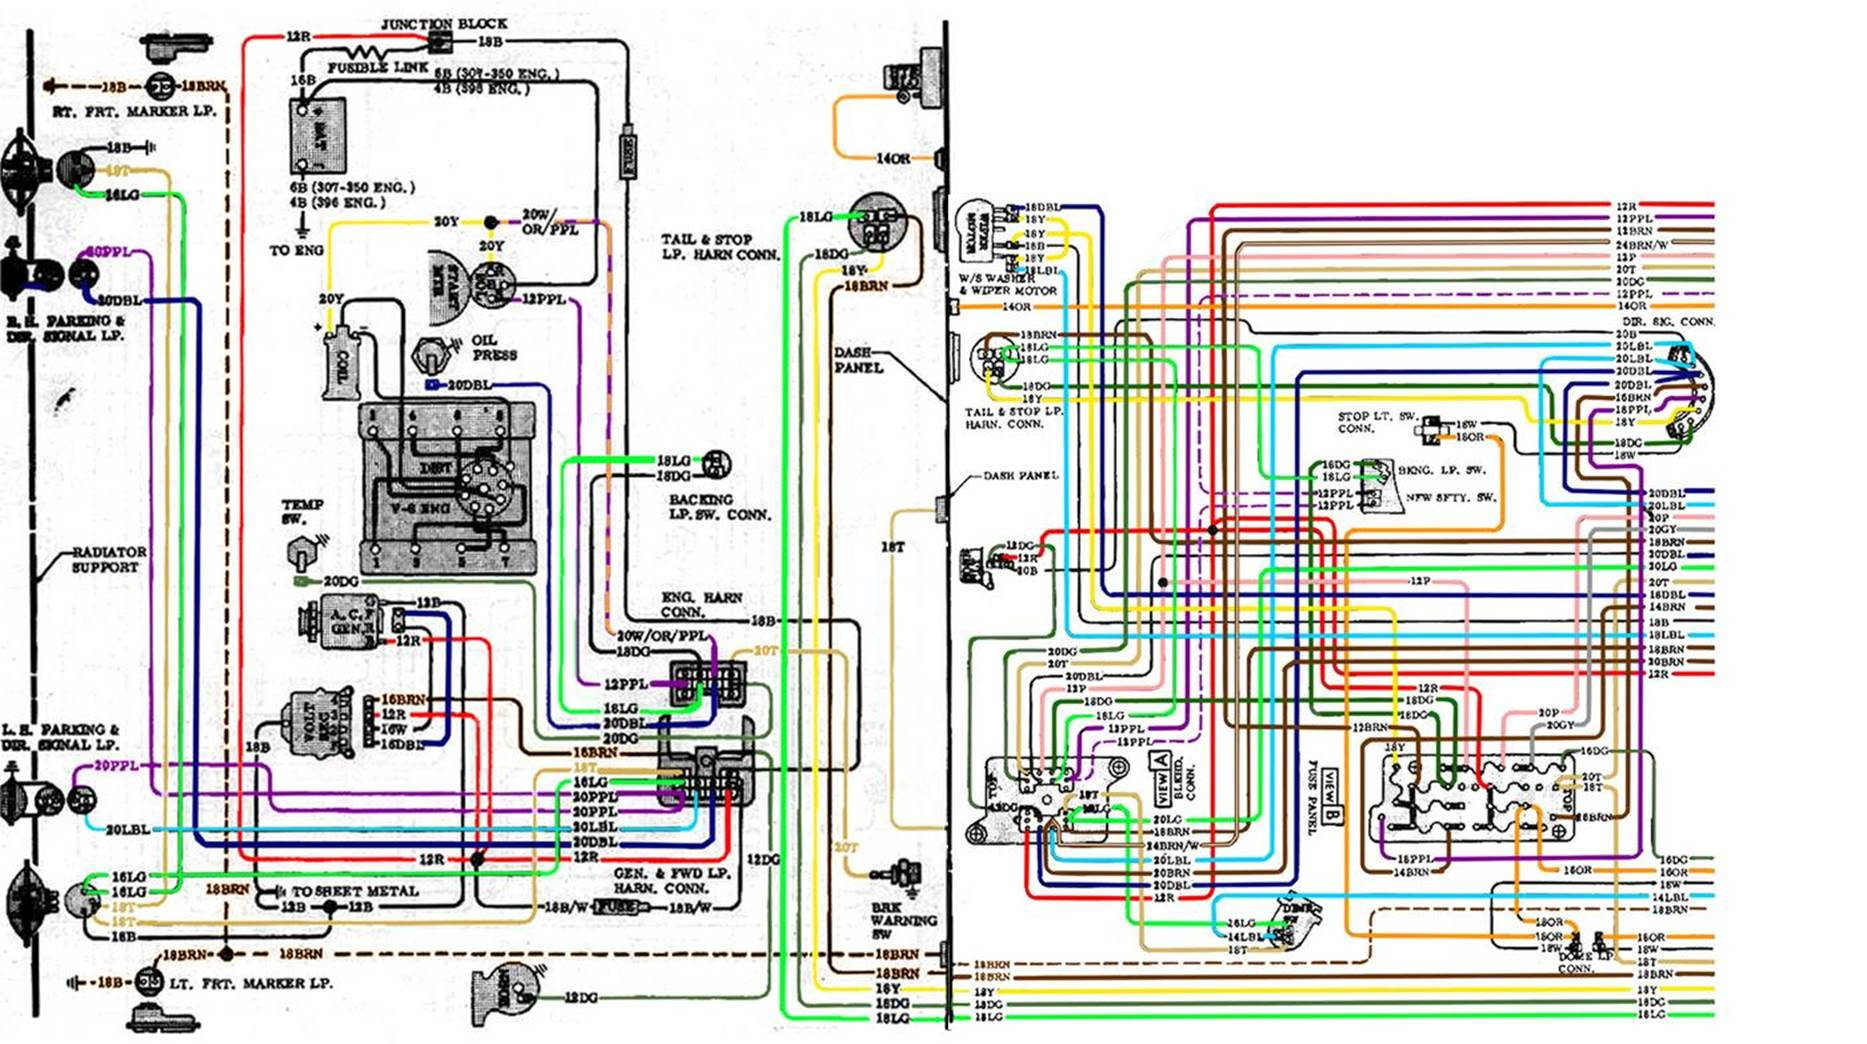 Wiring Diagram For 1970 Gmc Pickup - Wiring Data